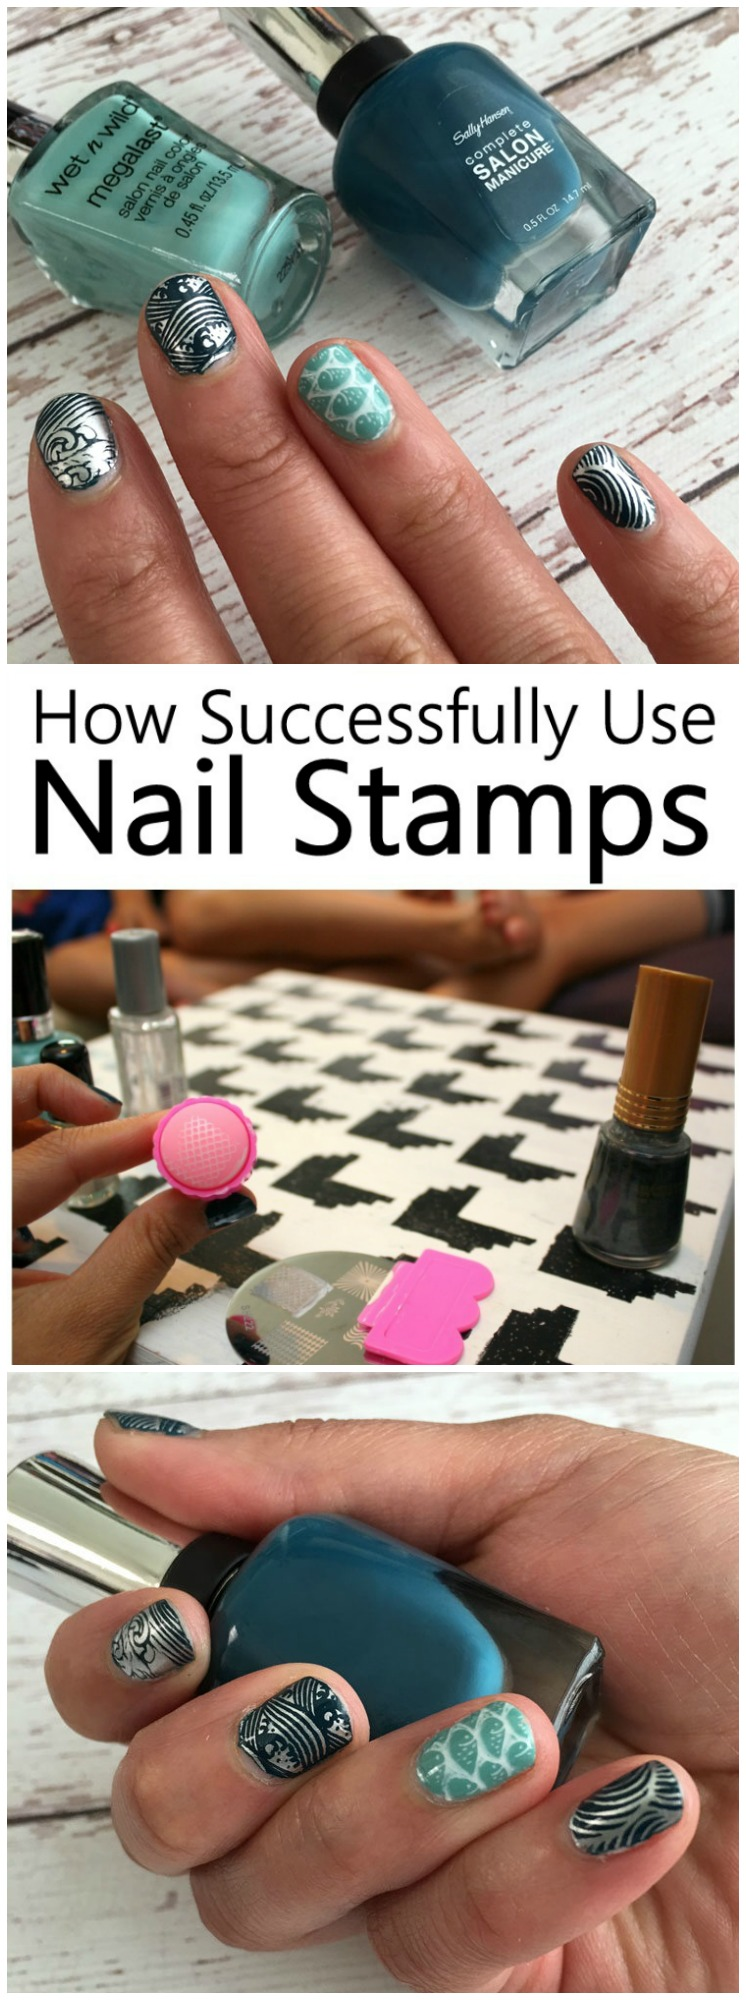 Step by step guide to nail stamping art and a huge list of resources for best products and supplies. Great beauty tutorial.